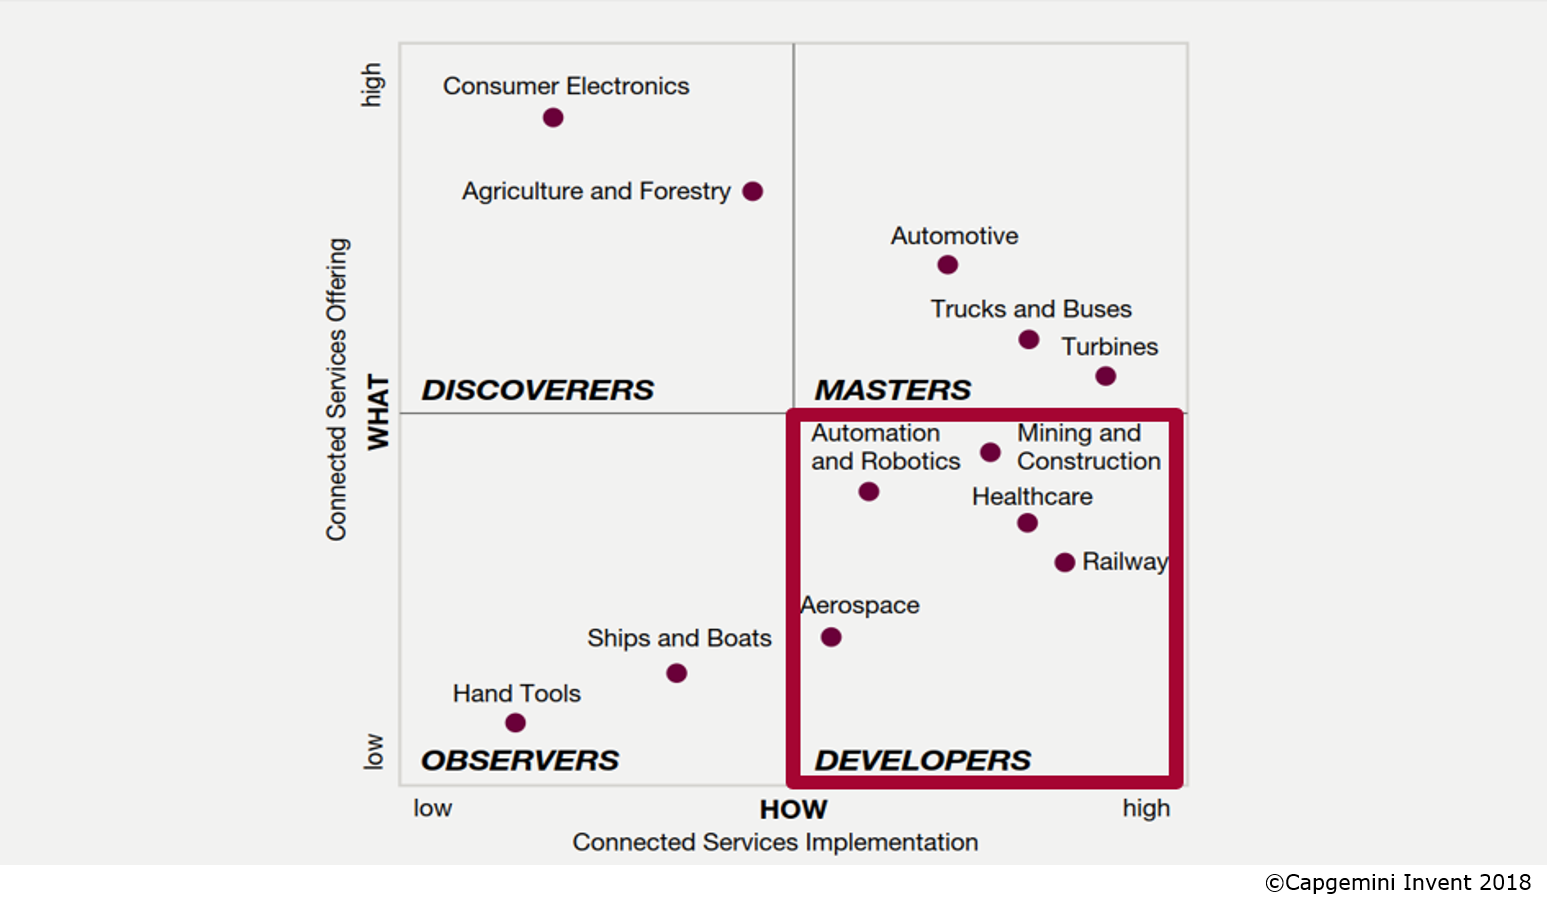 "Abbildung 1: Connected Services Maturity Matrix - Fokus ""Developers"""